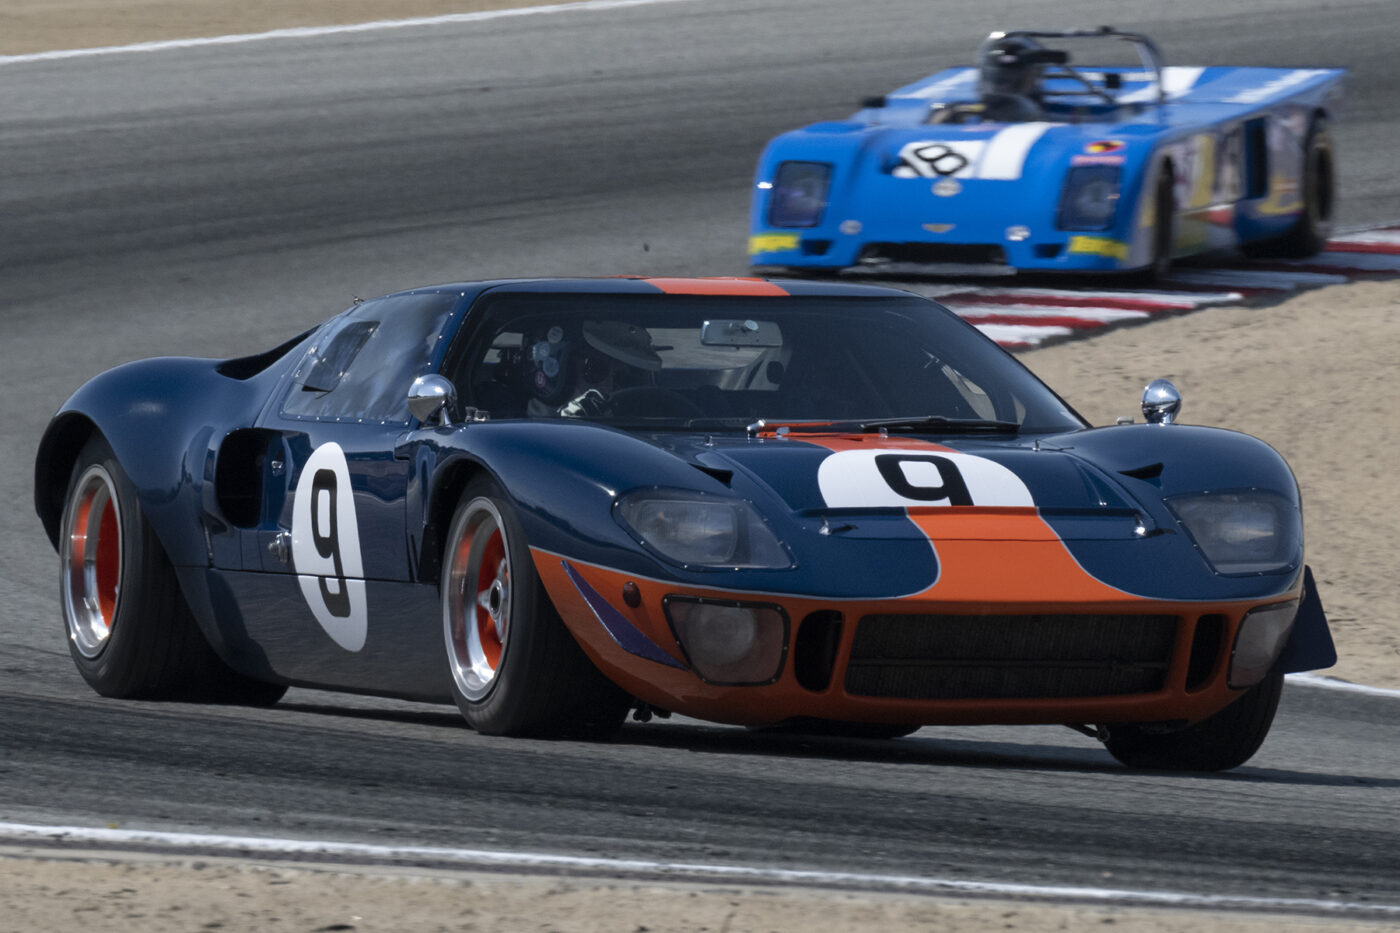 Alex MacAllister's 1966 Ford GT40 4949 exiting turn five. ©2021 Dennis Gray